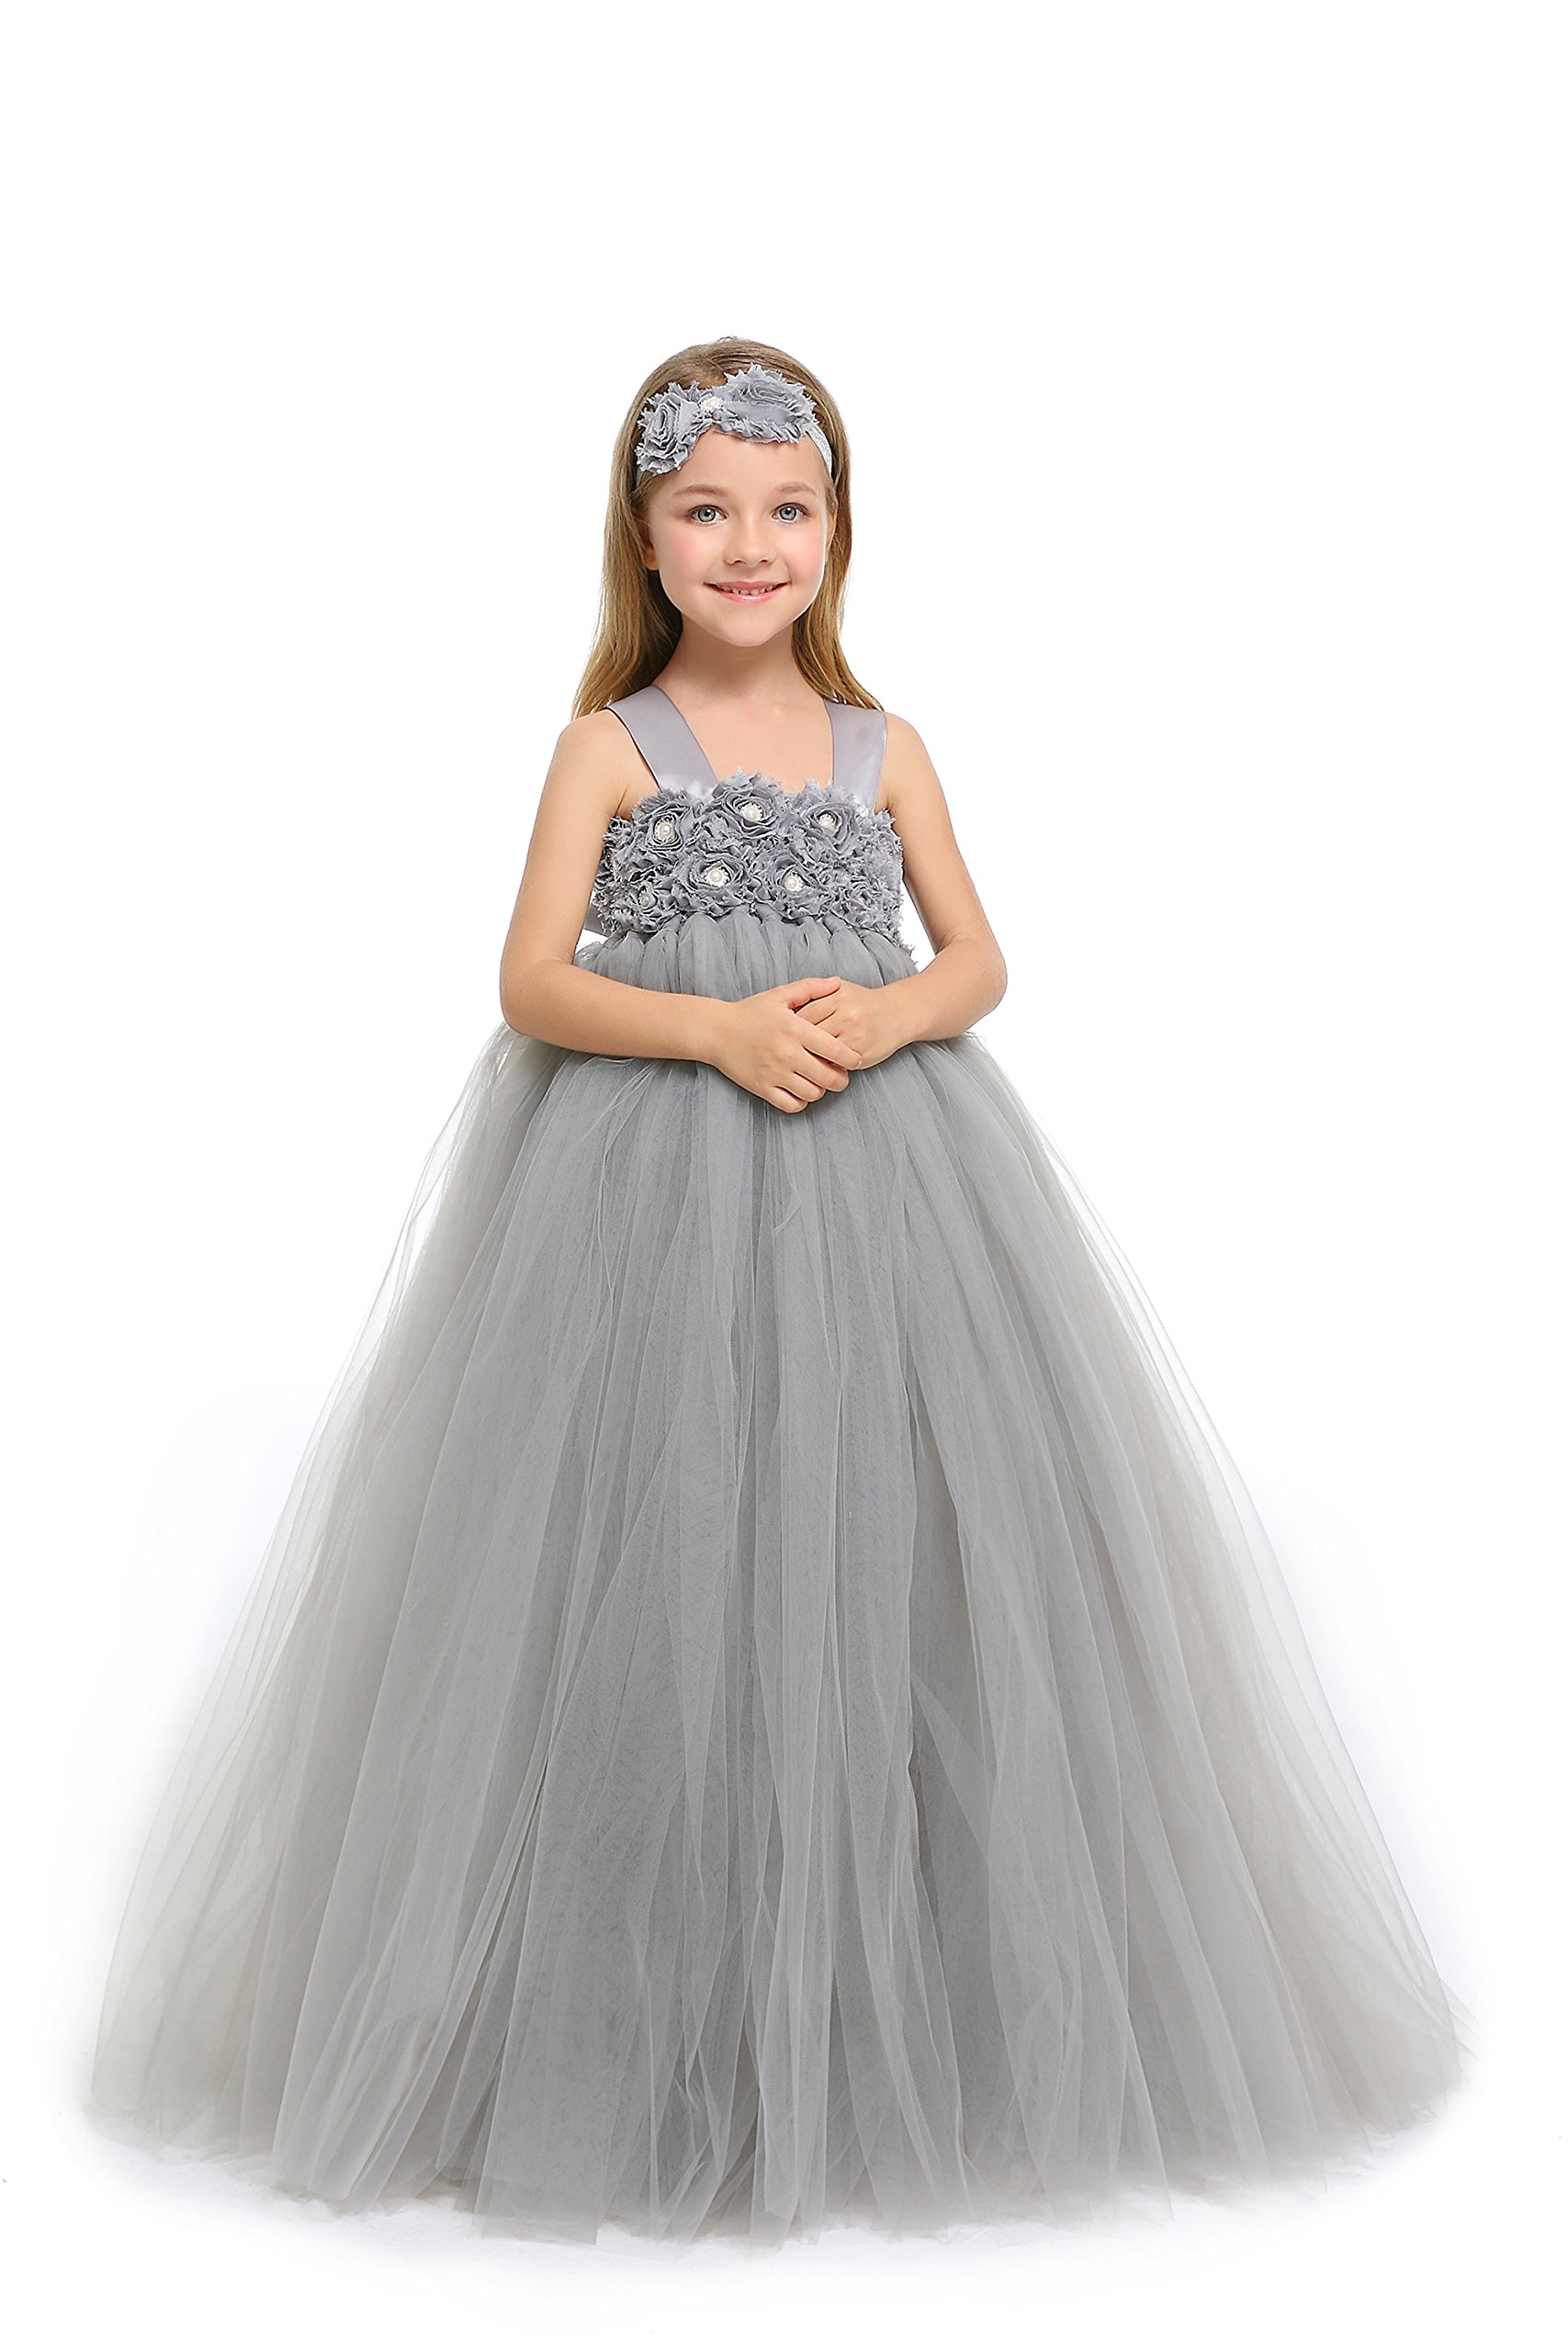 MALIBULICo Fluffy Flower Girl Tutu Dress with Matching Headband for Wedding and Birthday Party by MALIBULICo (Image #5)